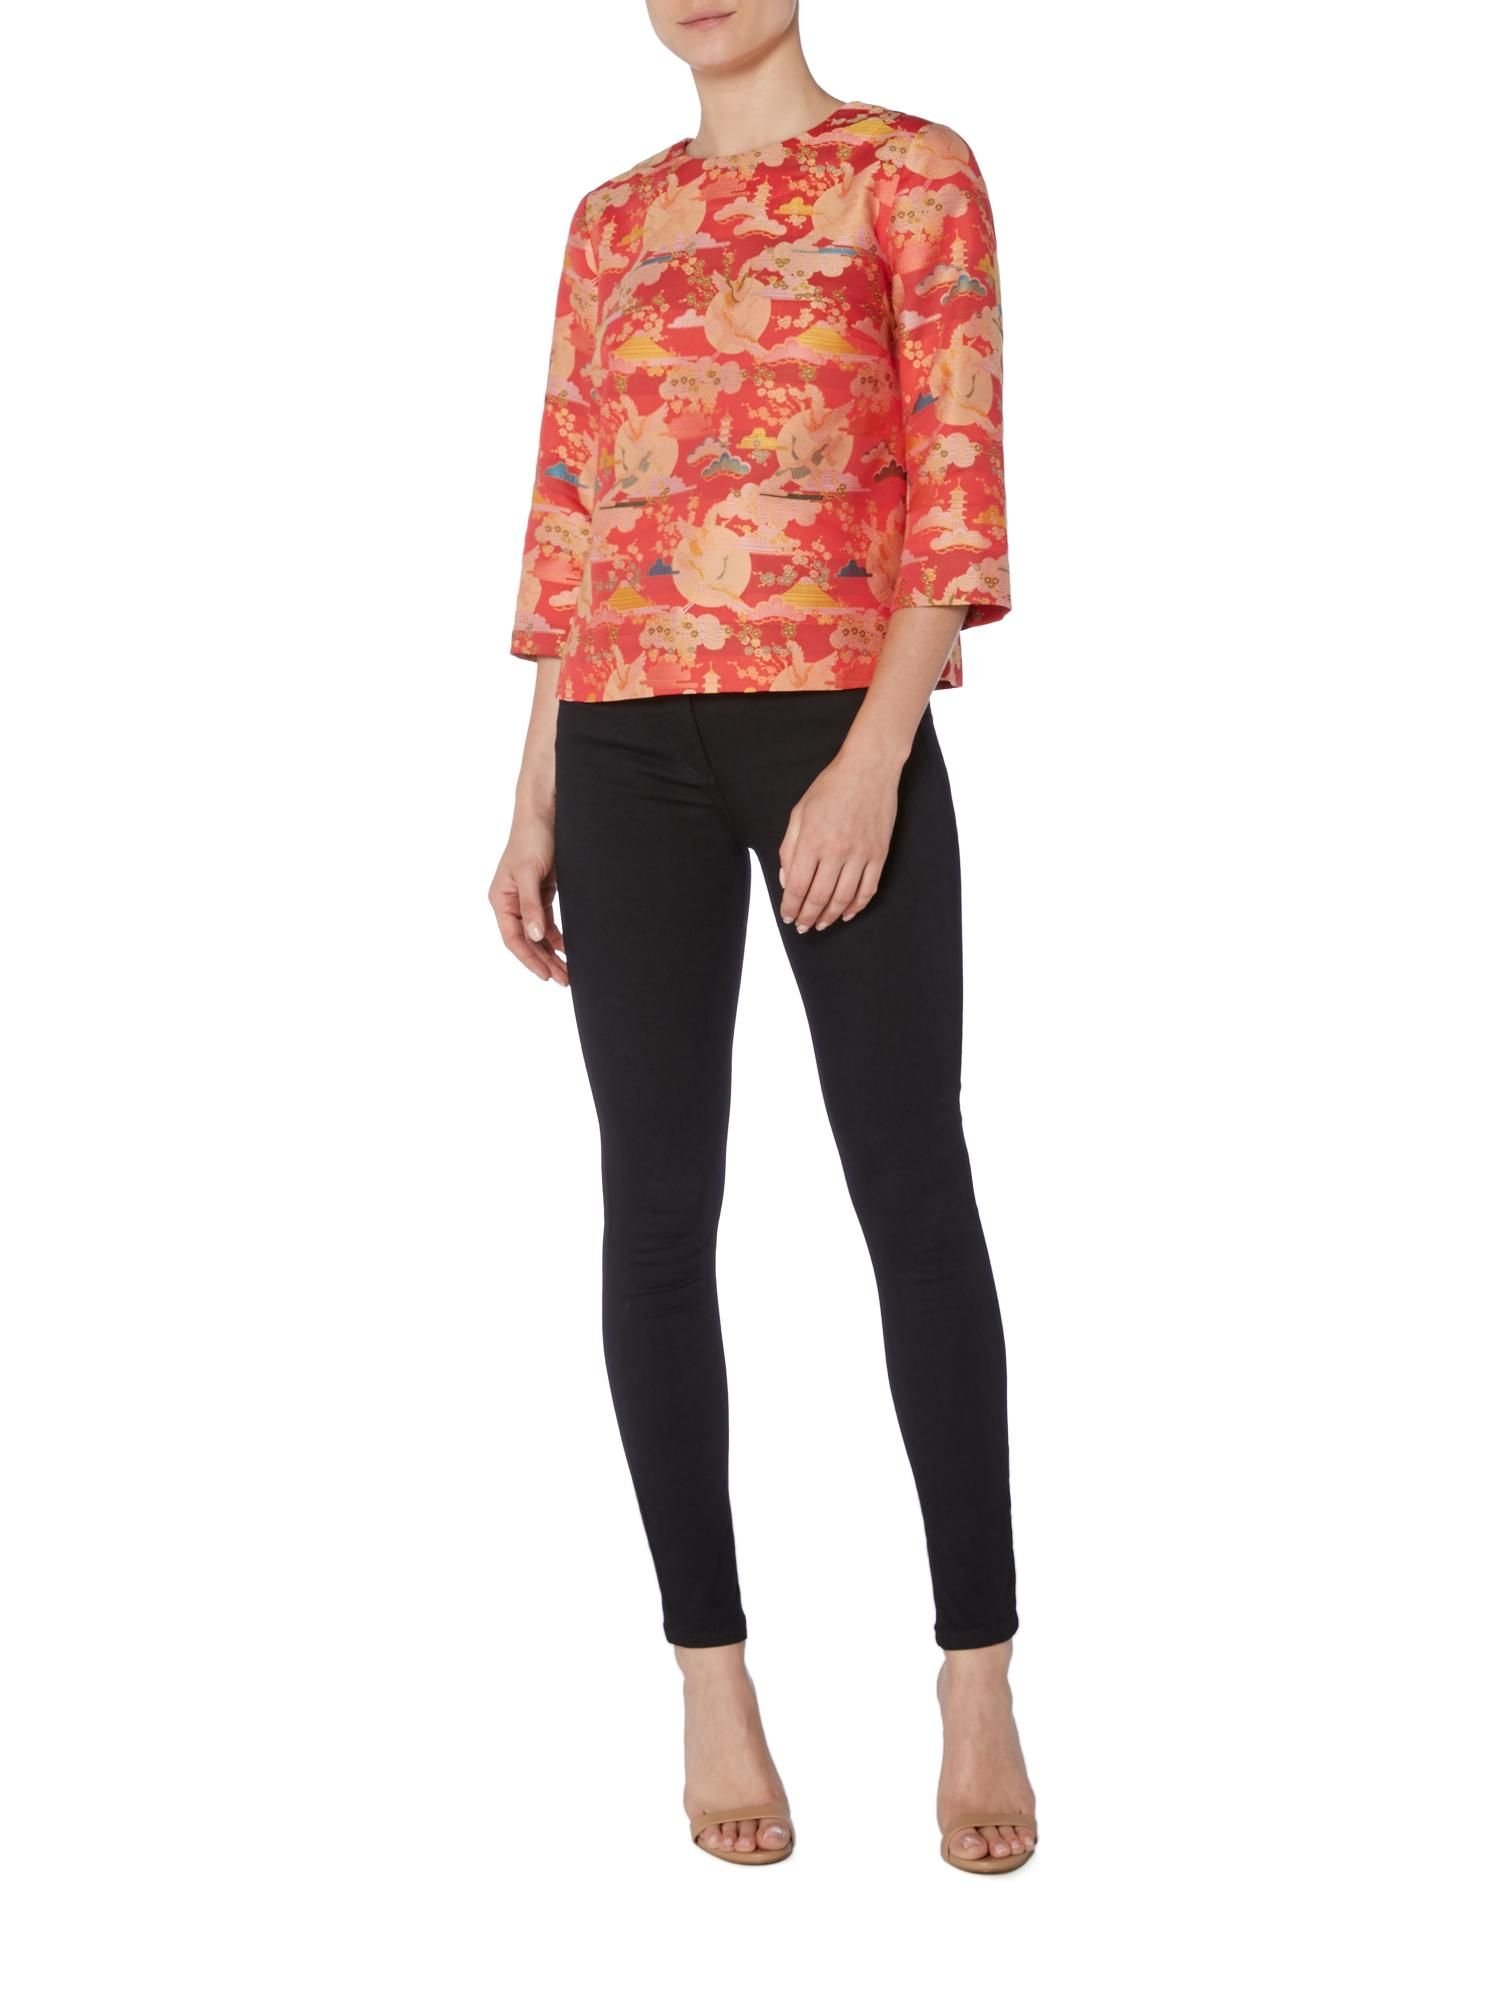 2530566620c786 Buy your Biba Jacquard Oriental Boxy Shell Top online now at House of  Fraser. Why not Buy and Collect in-store?